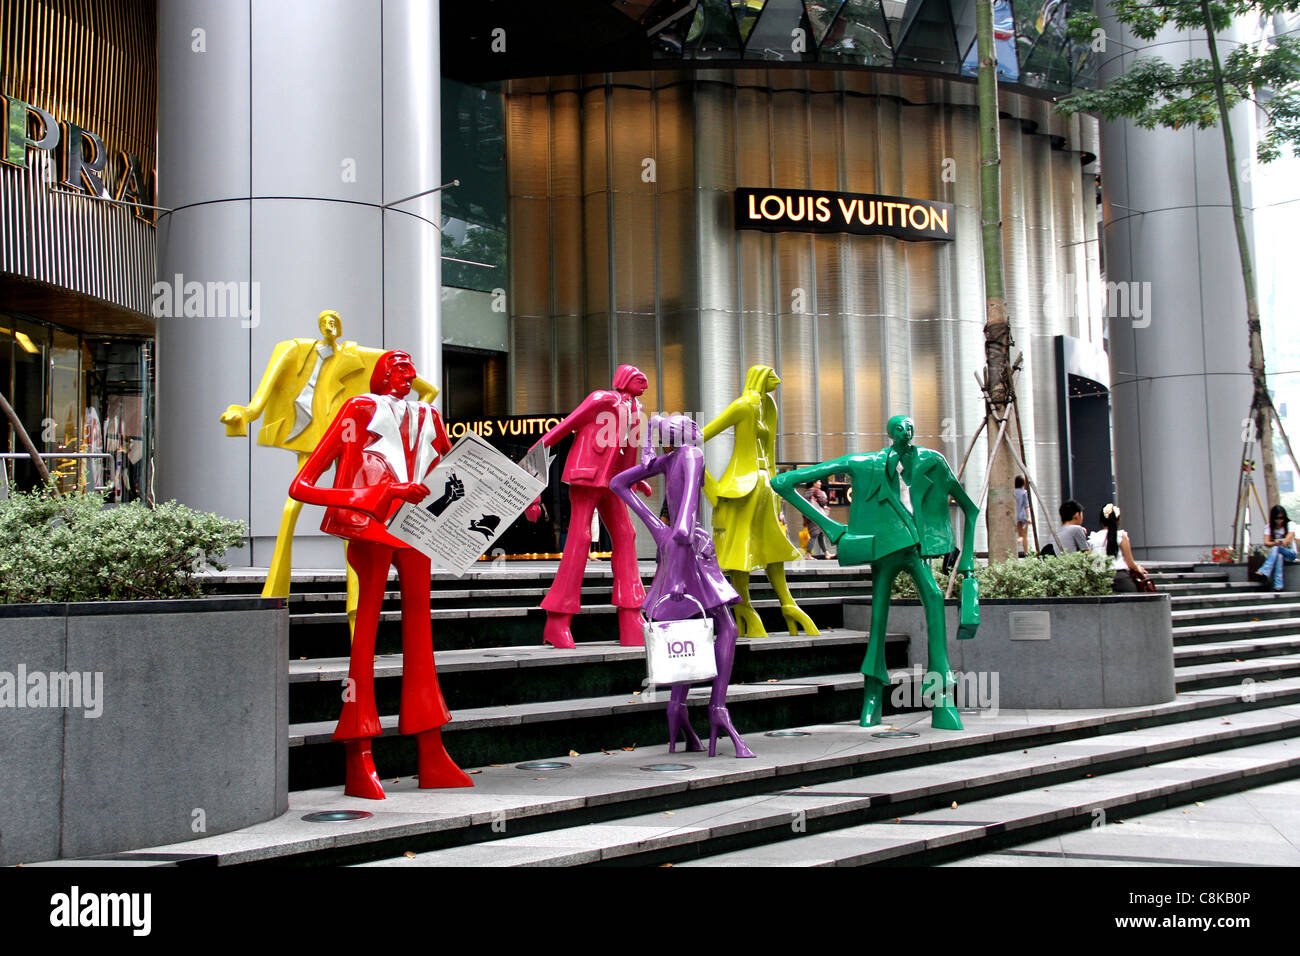 c6a85114fb Brightly painted fashion statues stand outside ION Shopping Centre ...